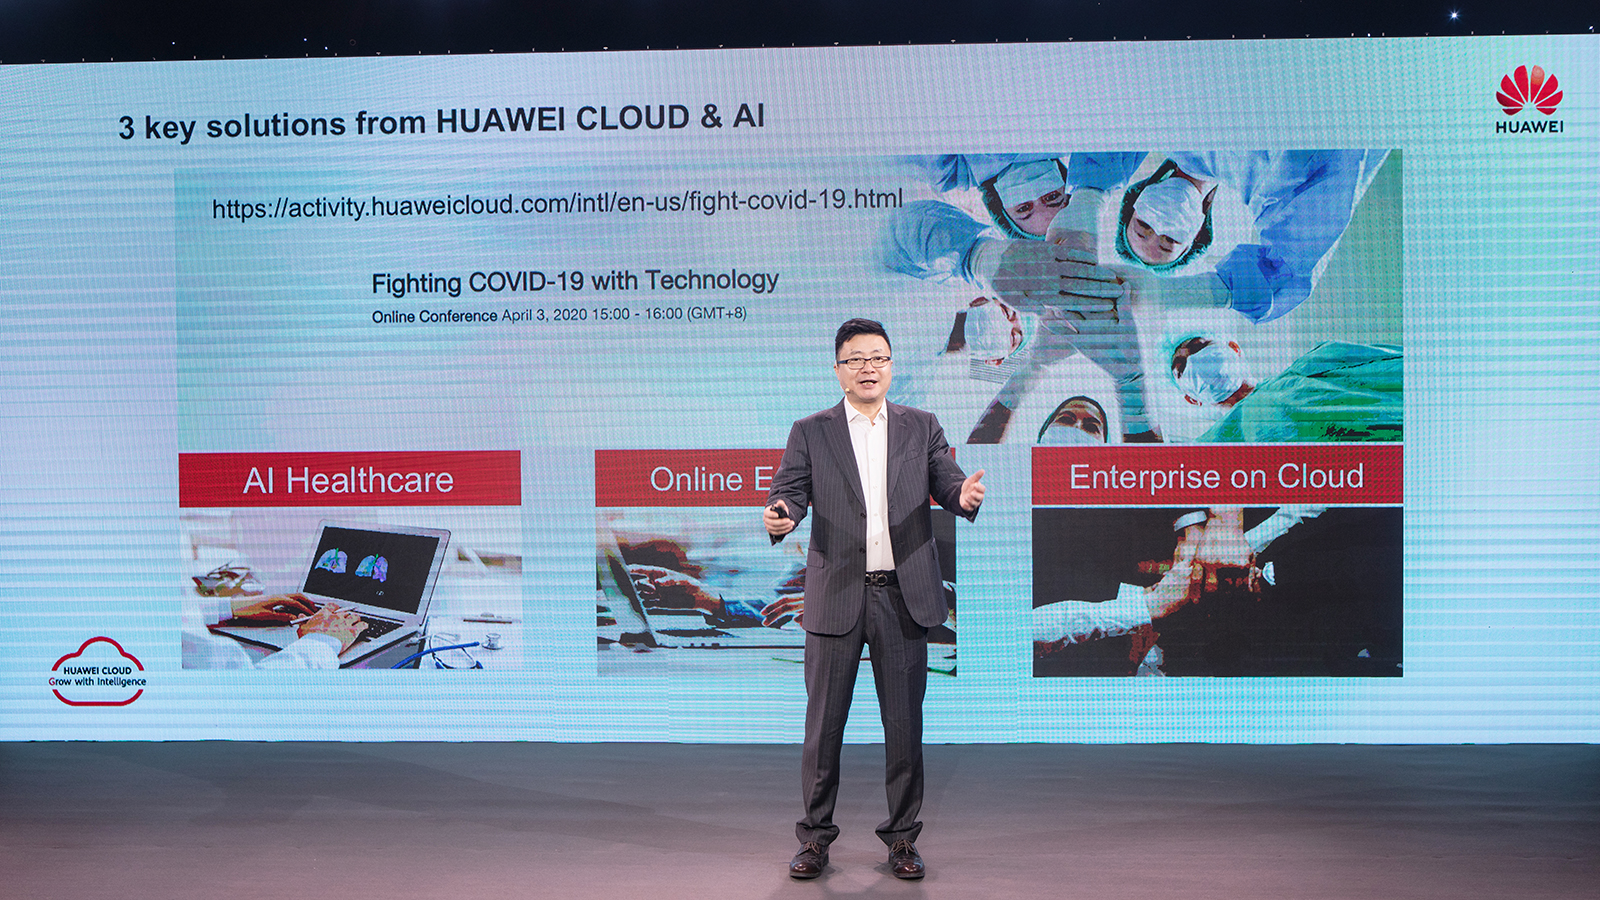 Huawei uses cloud and AI services to help curb COVID-19